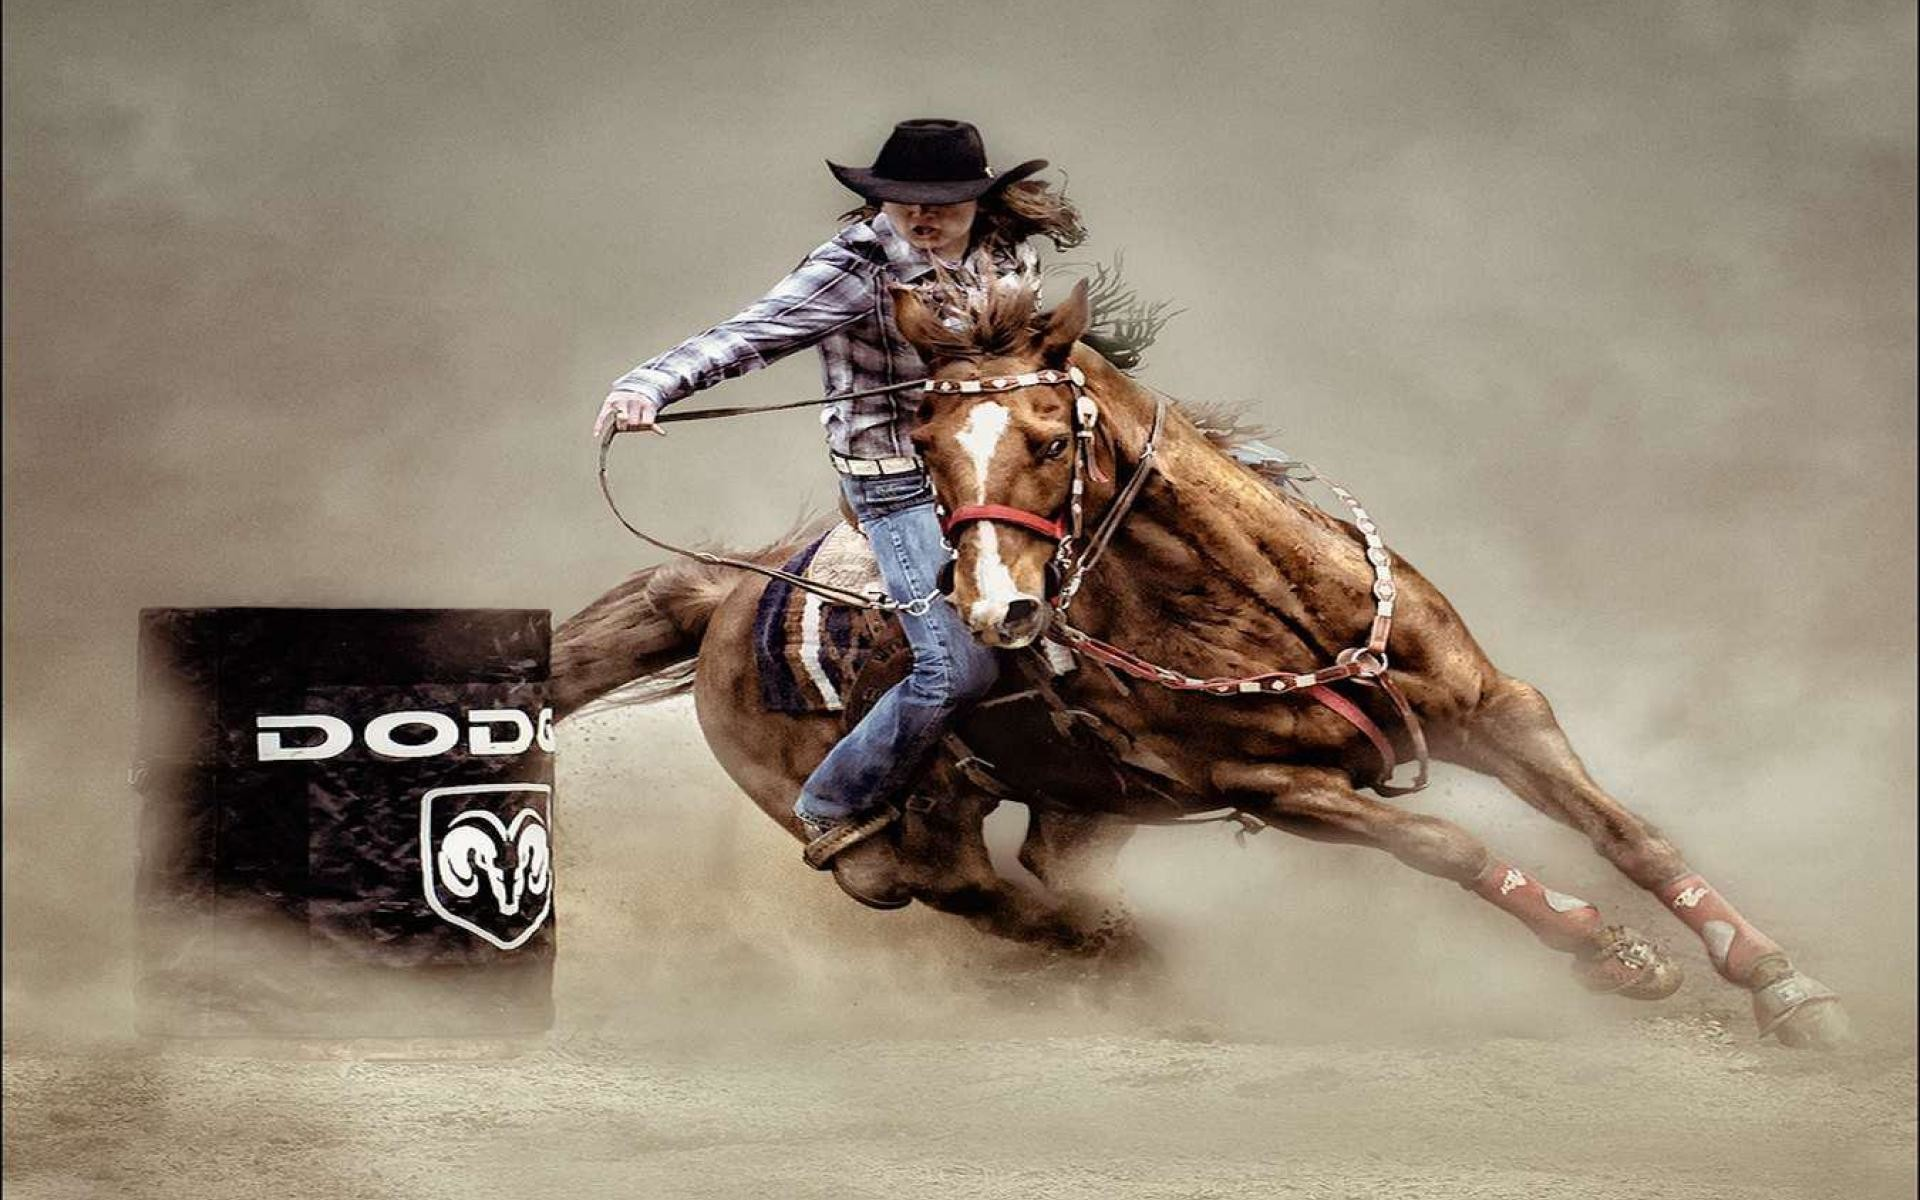 Res: 1920x1200, Rodeo Wallpapers